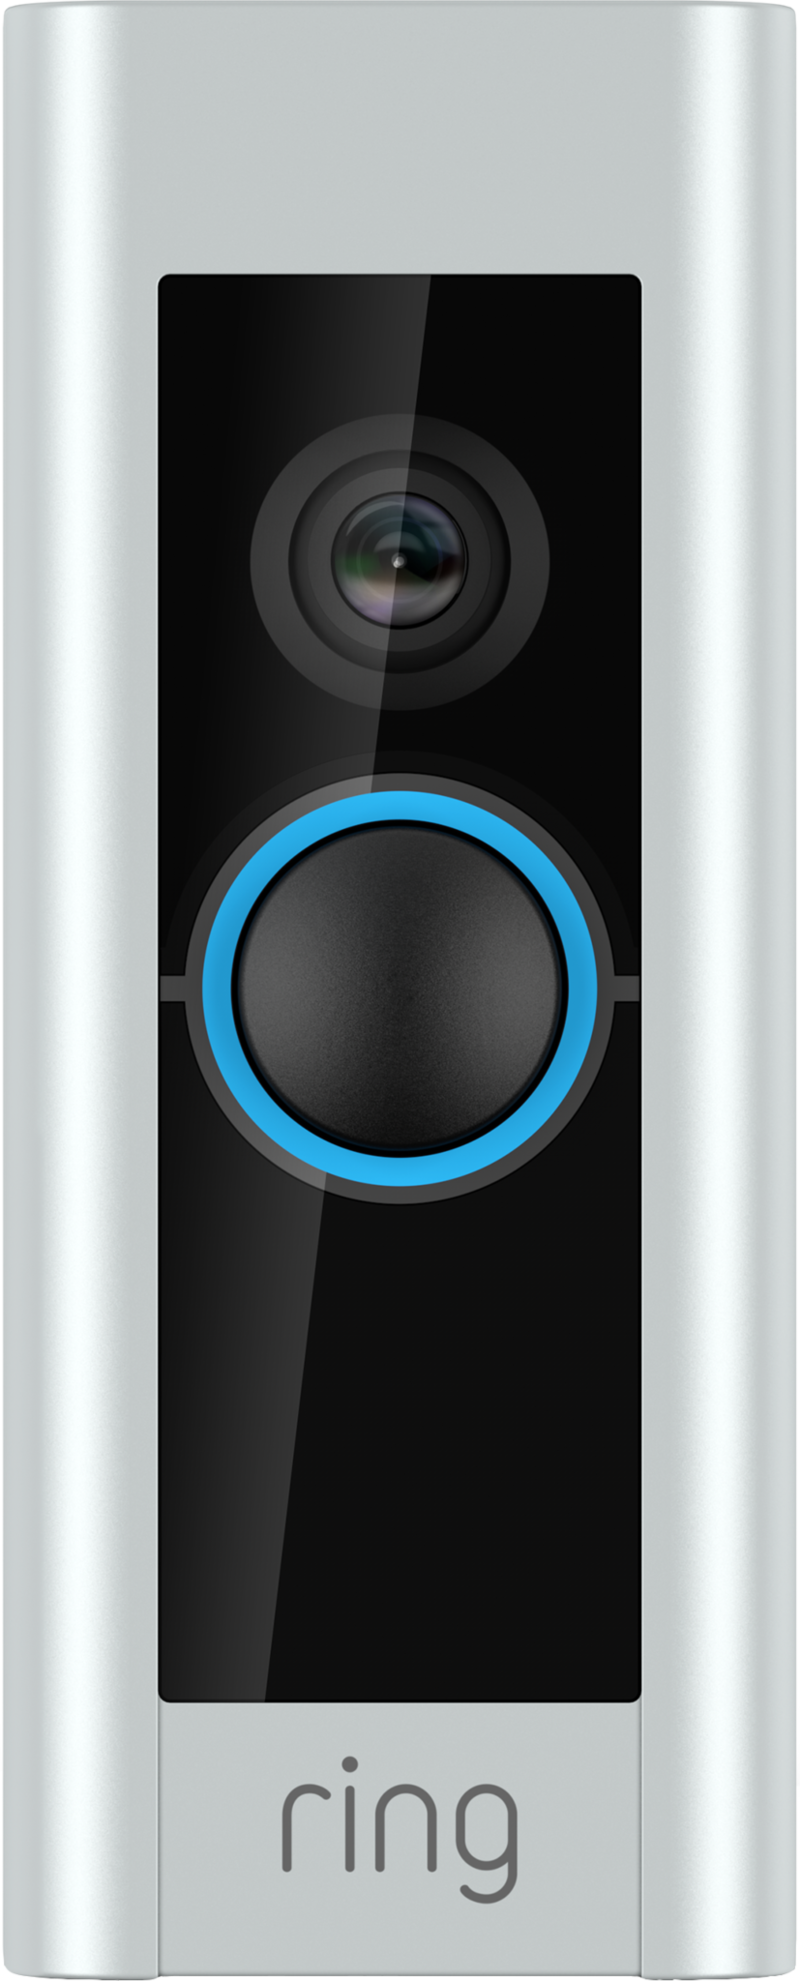 ring-video-doorbell-pro-render.png?itok=